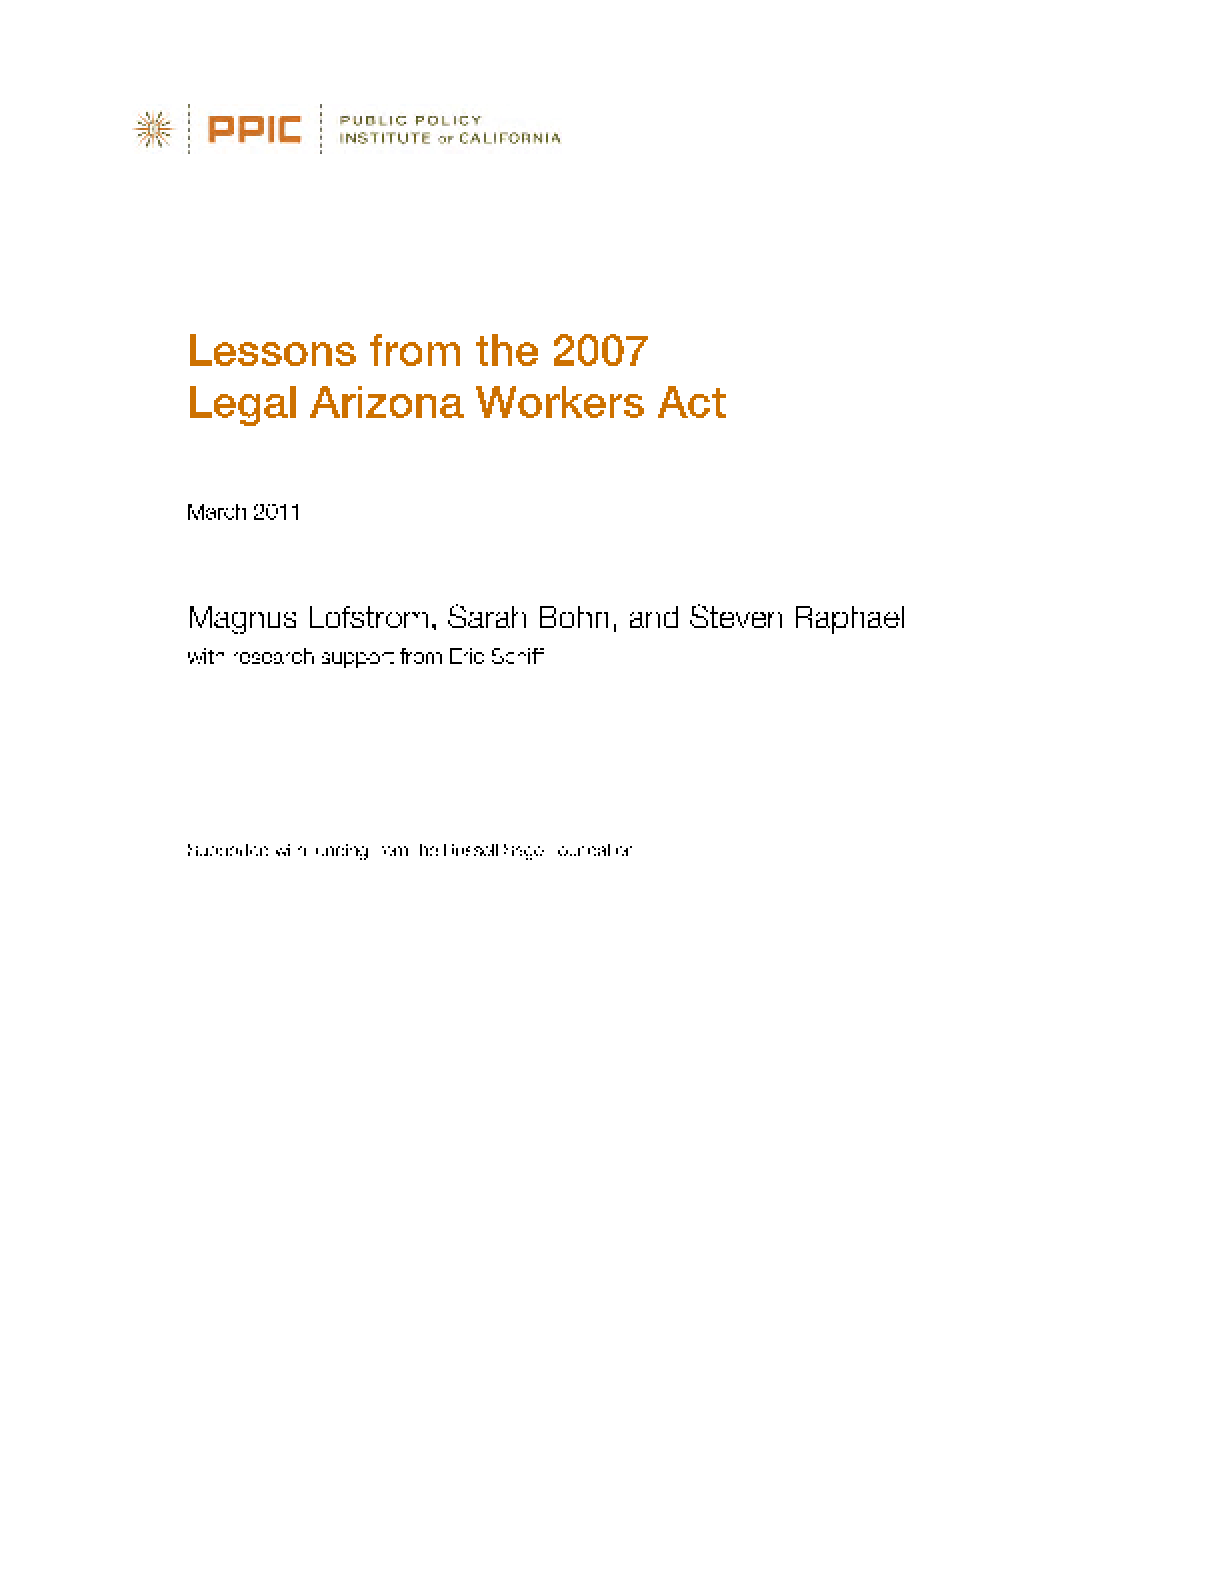 Lessons From the 2007 Legal Arizona Workers Act